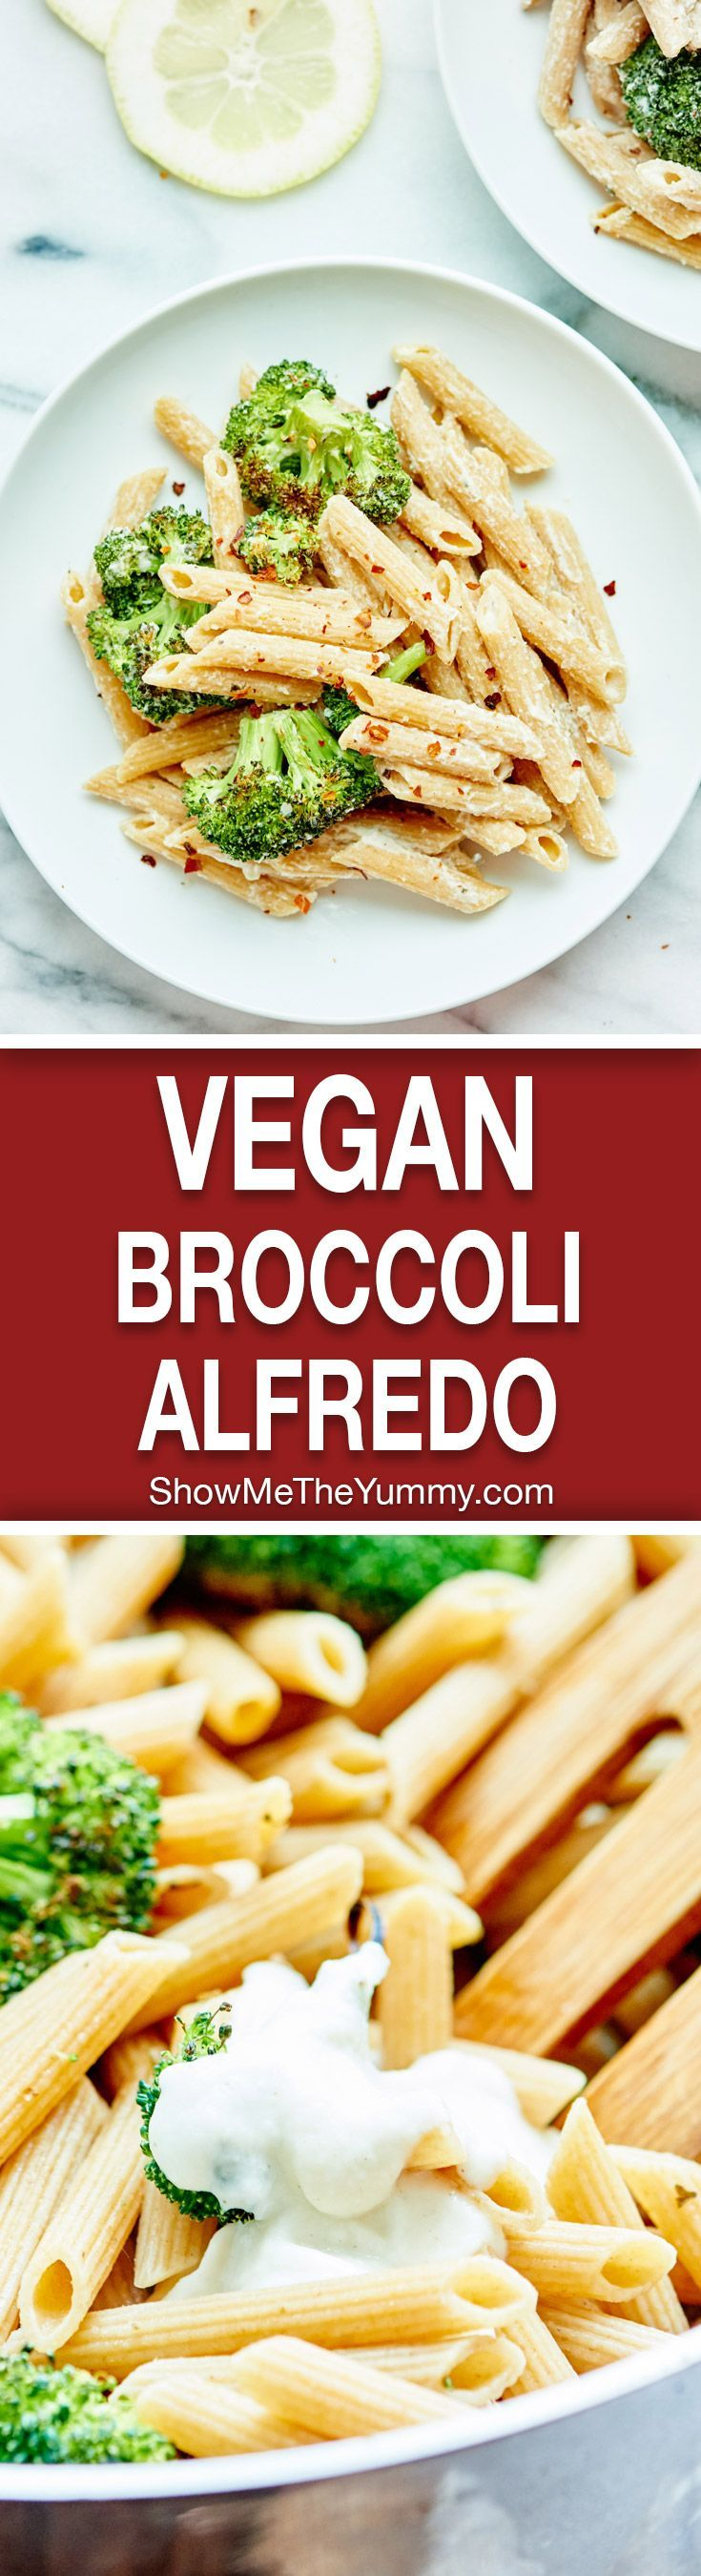 Vegan Alfredo with Broccoli - Made with a healthy cauliflower sauce, roasted broccoli, and whole wheat penne pasta! Cozy, healthy food at it's finest!